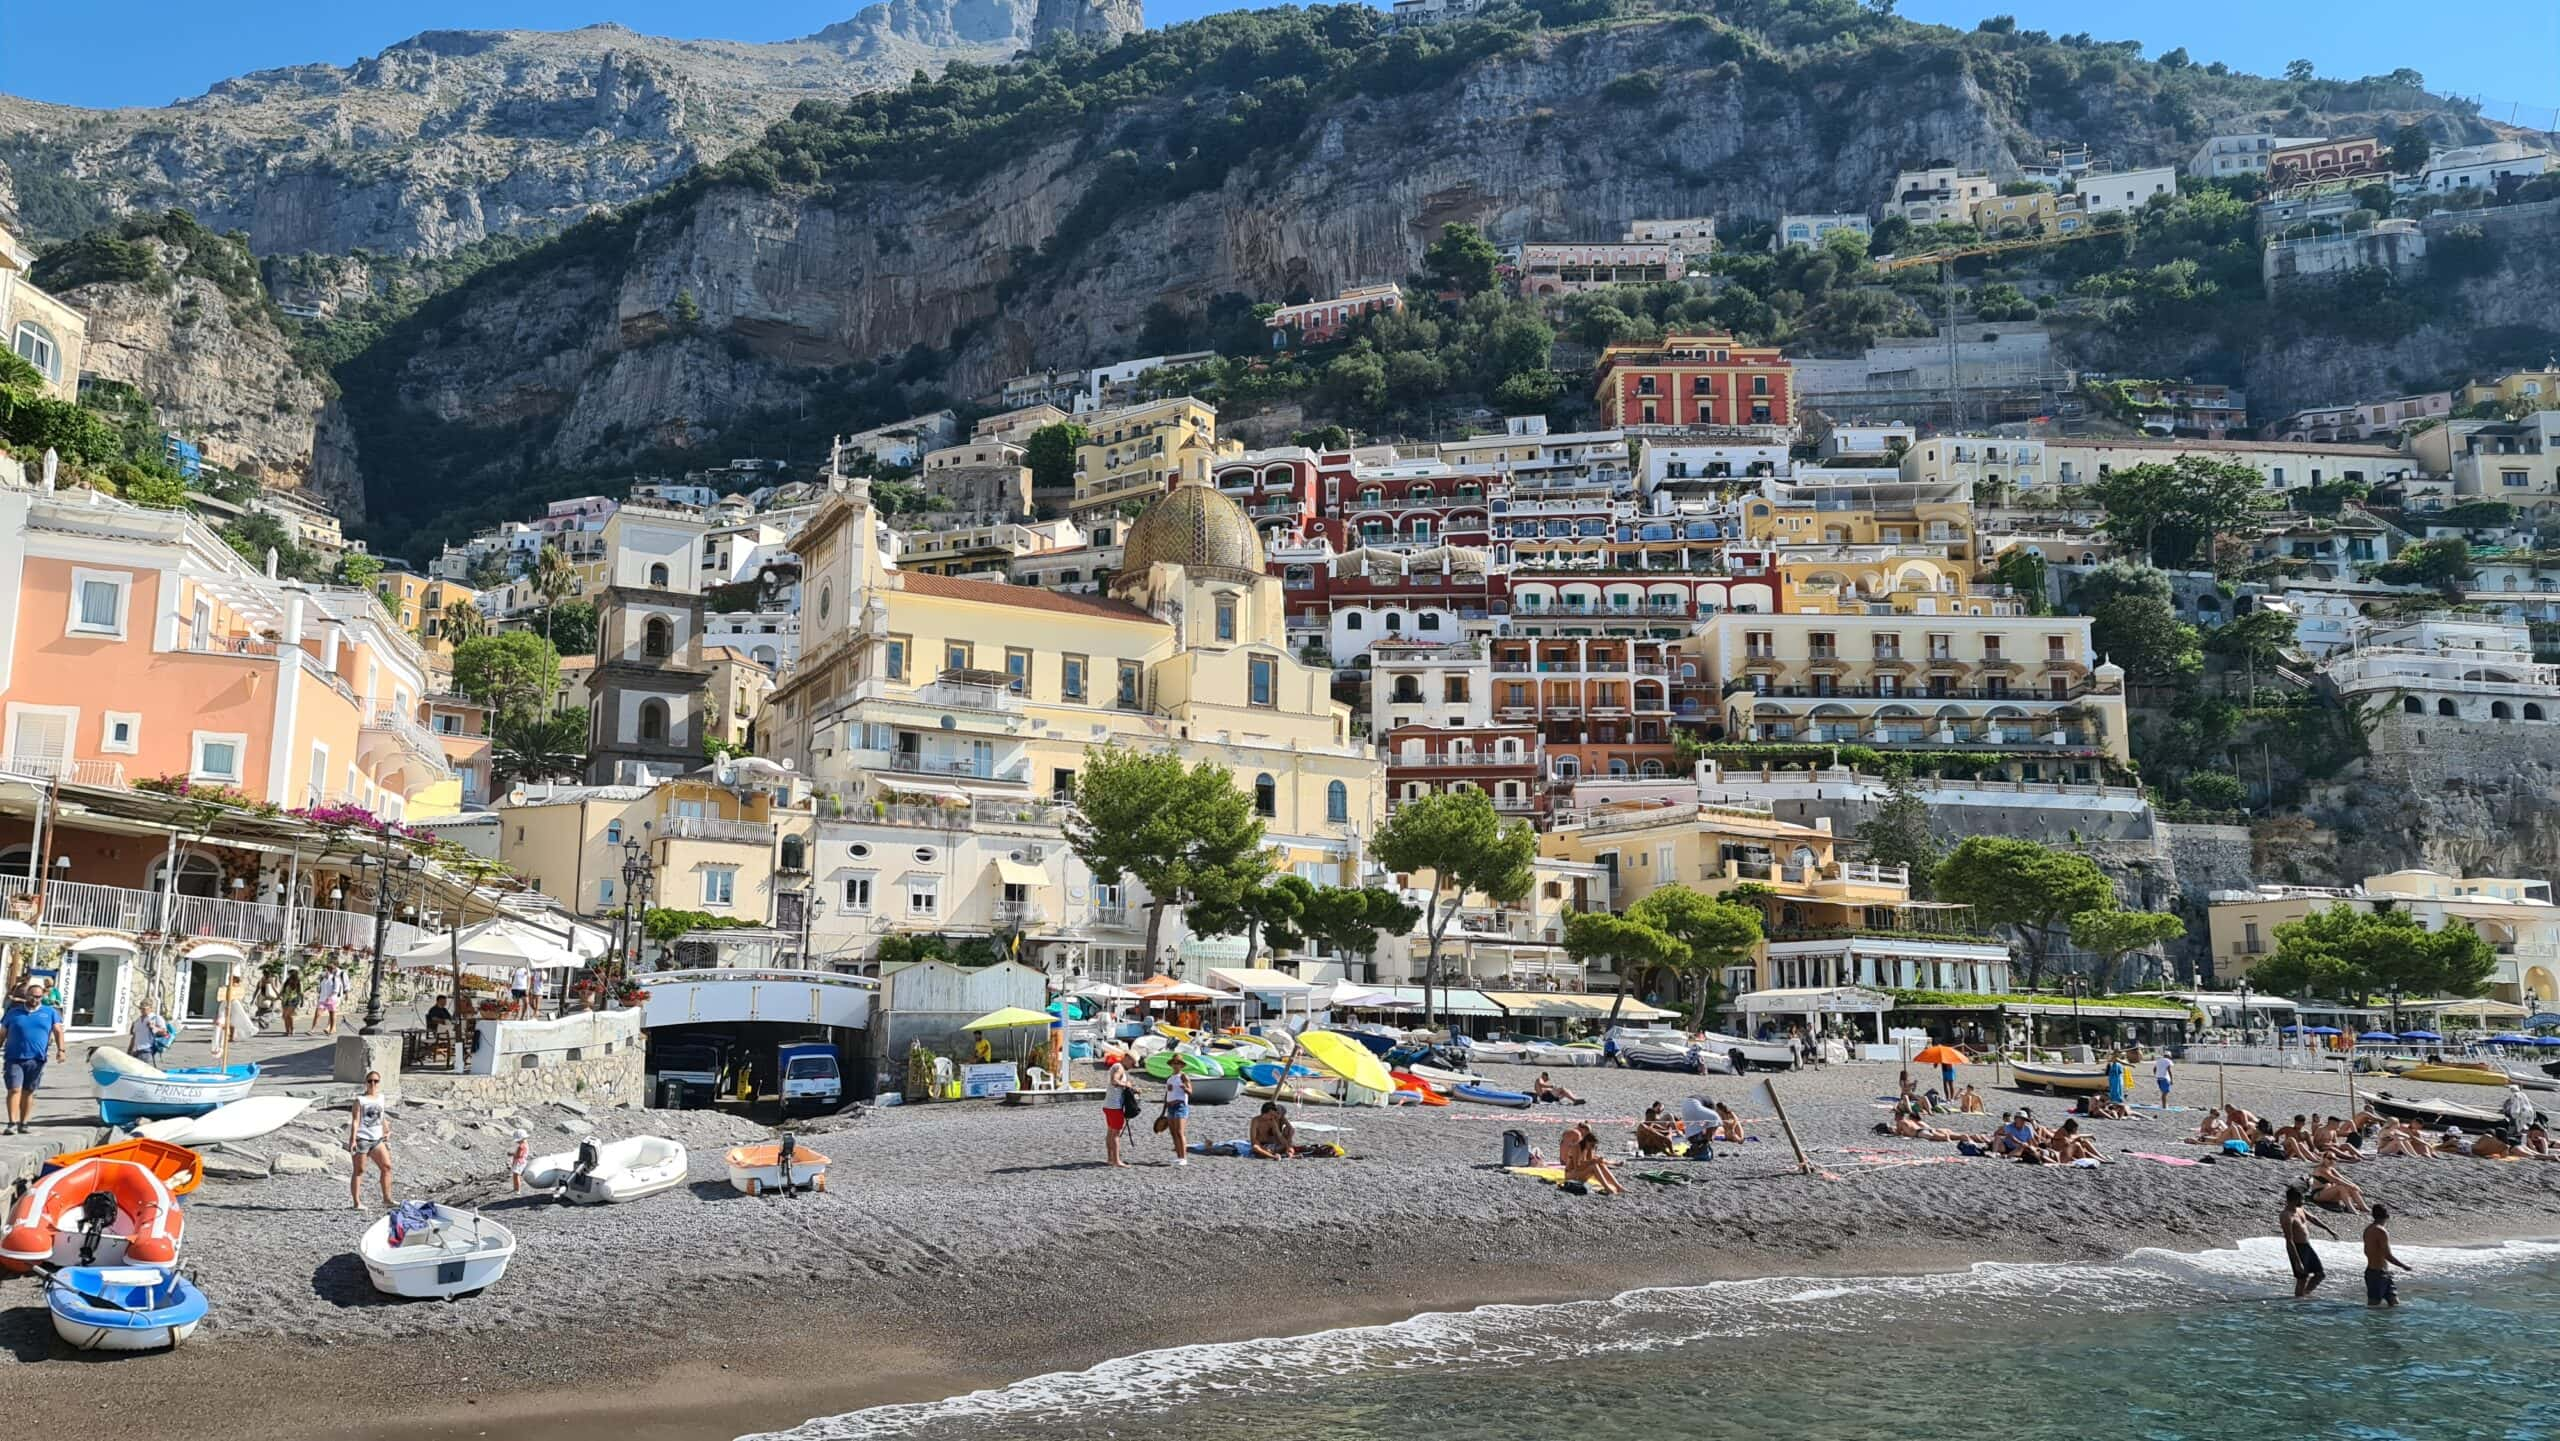 Positano Italy: 10 unforgettable Things to do in Positano & Positano beach 8